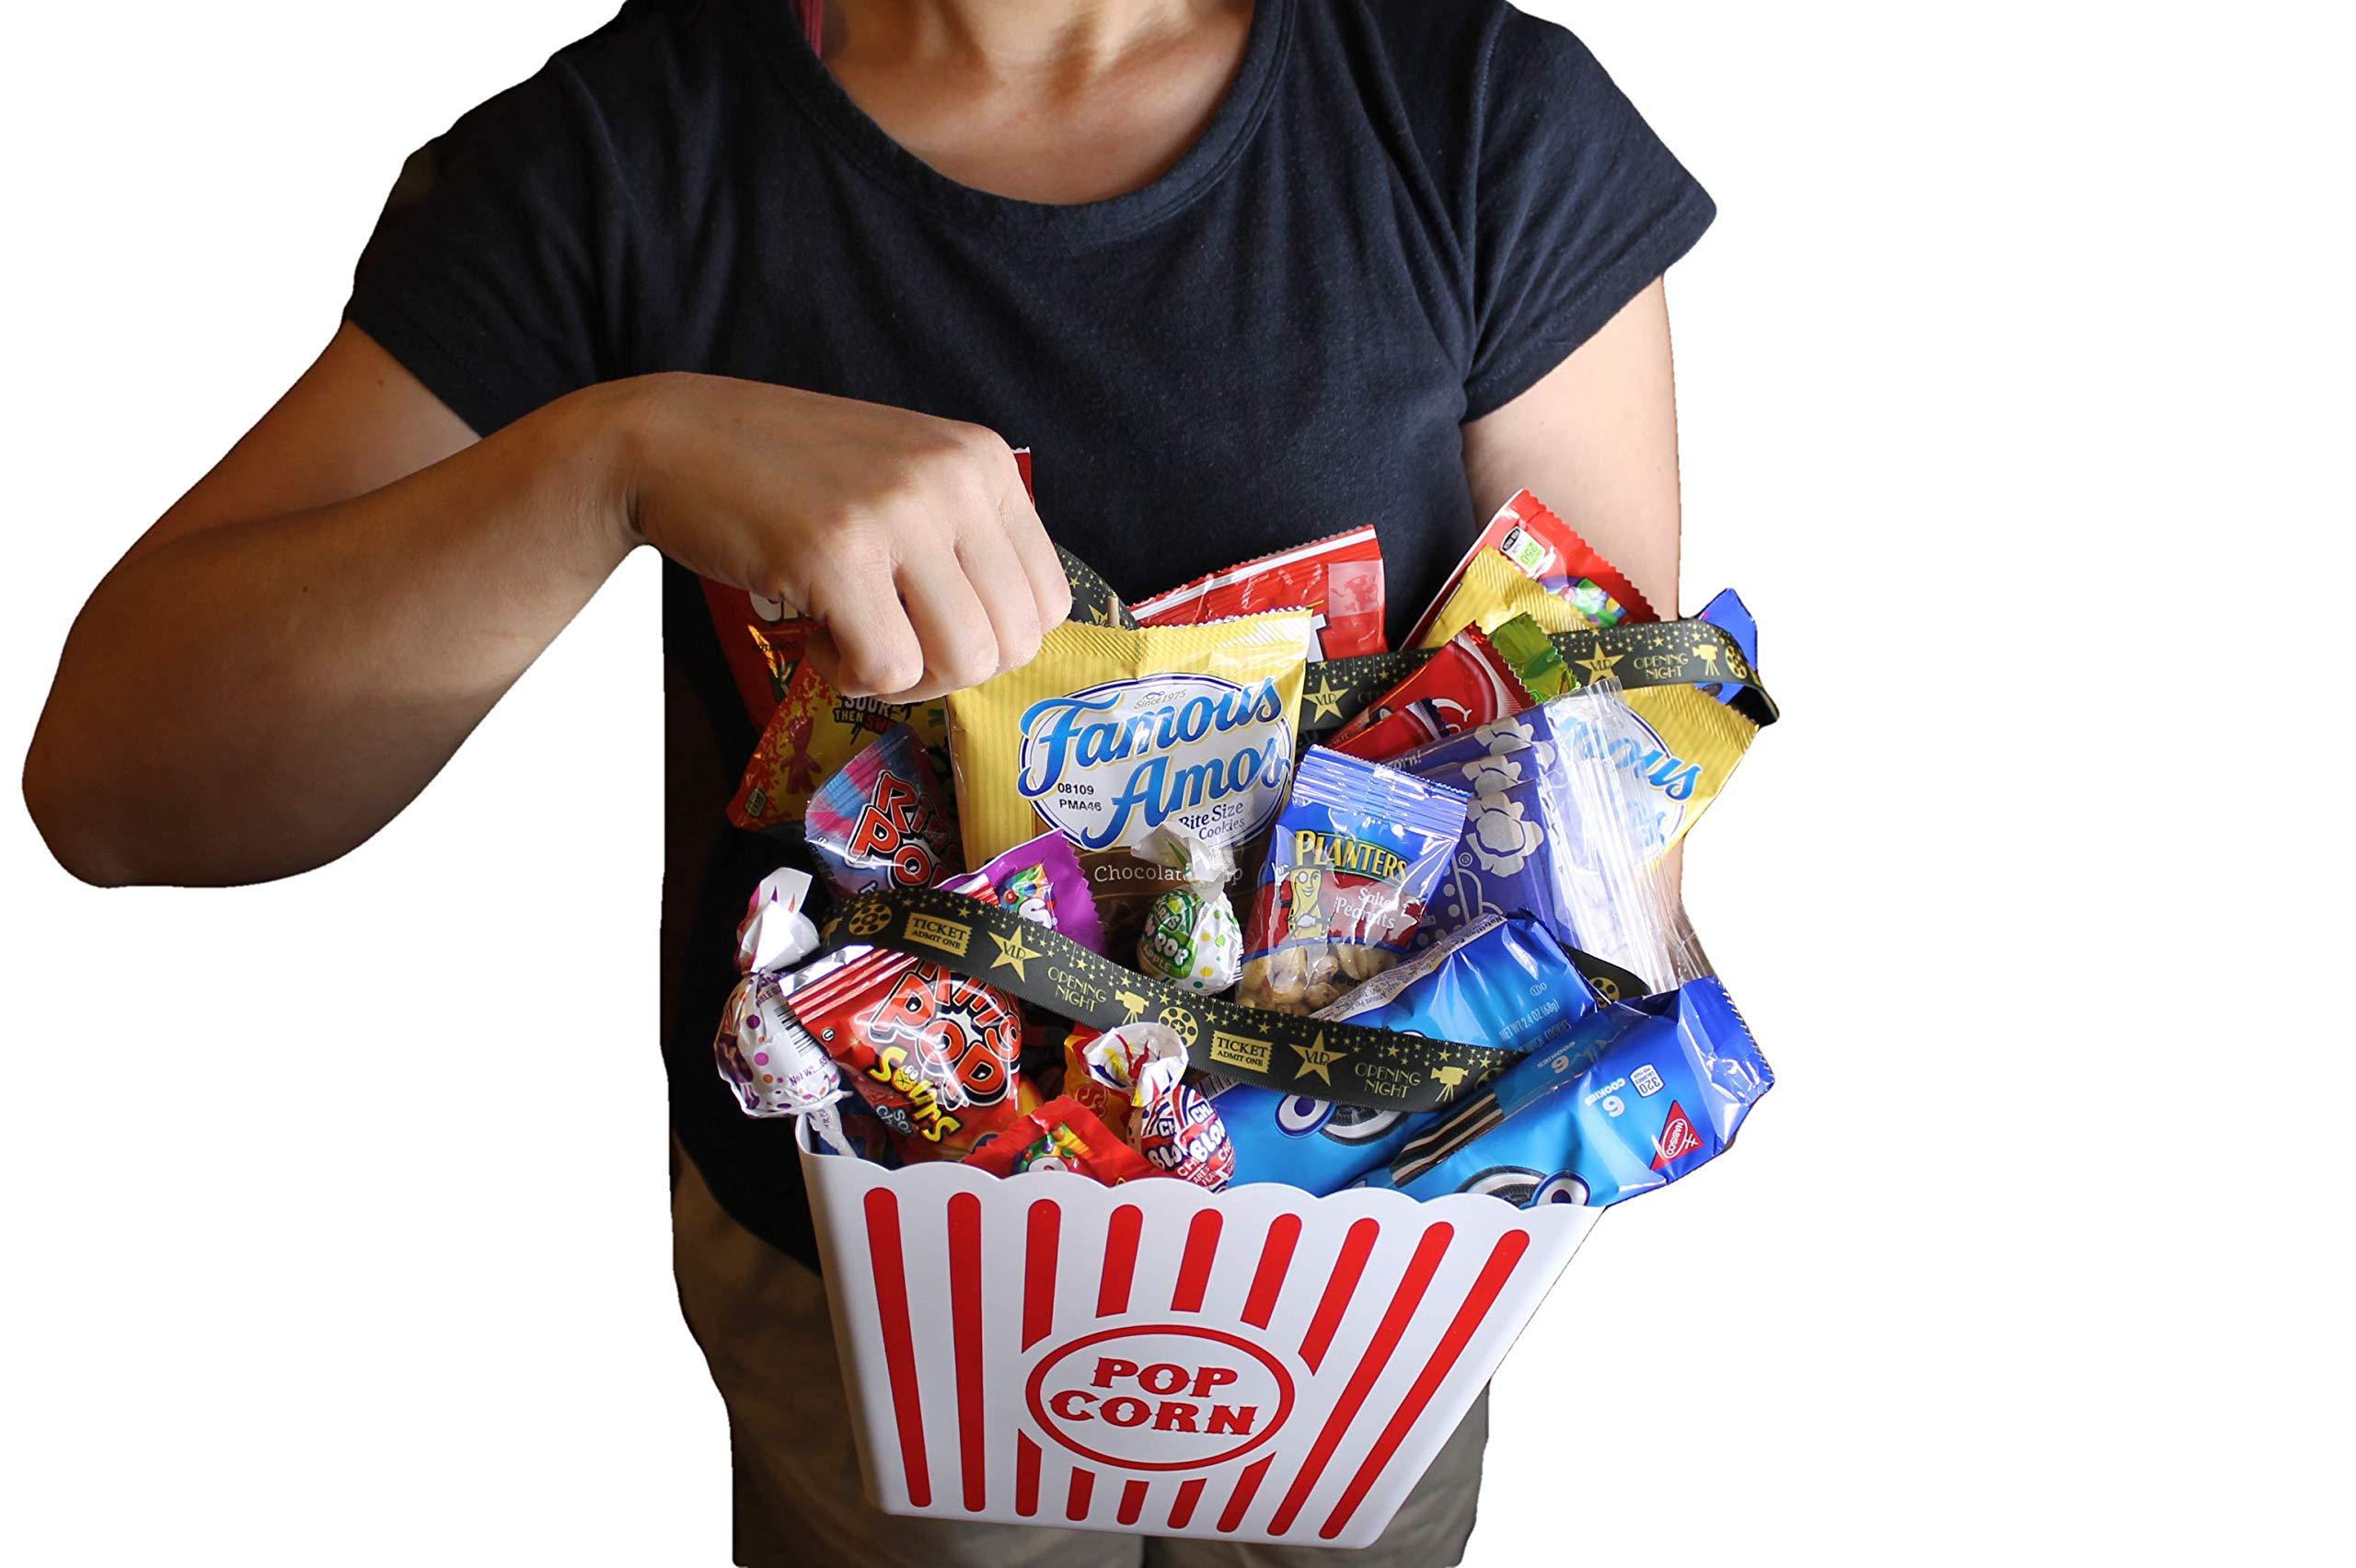 MOVIE NIGHT GIFT BASKET 30 Of Your Favorite Popcorn, Candy Cookies Crackers Perfect Birthday Box Holiday Surprised College Care Package Kids Party Family Movie Night Or A Special Date Night by Tiny Timz (Image #5)